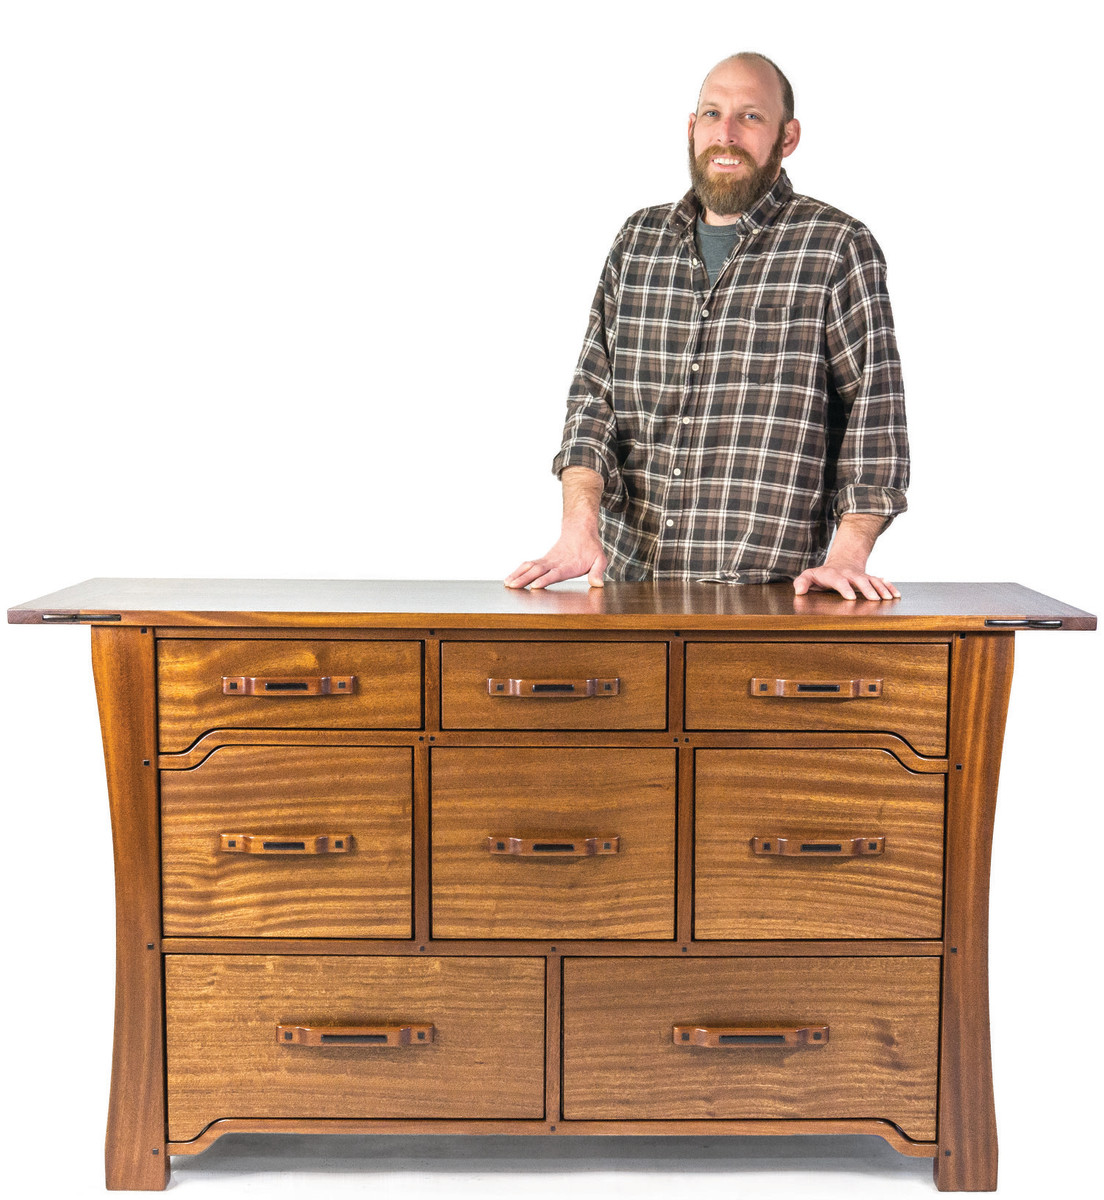 Brian Brace with a dresser made in the style of Greene & Greene, with a dye-stained, lacquered finish.